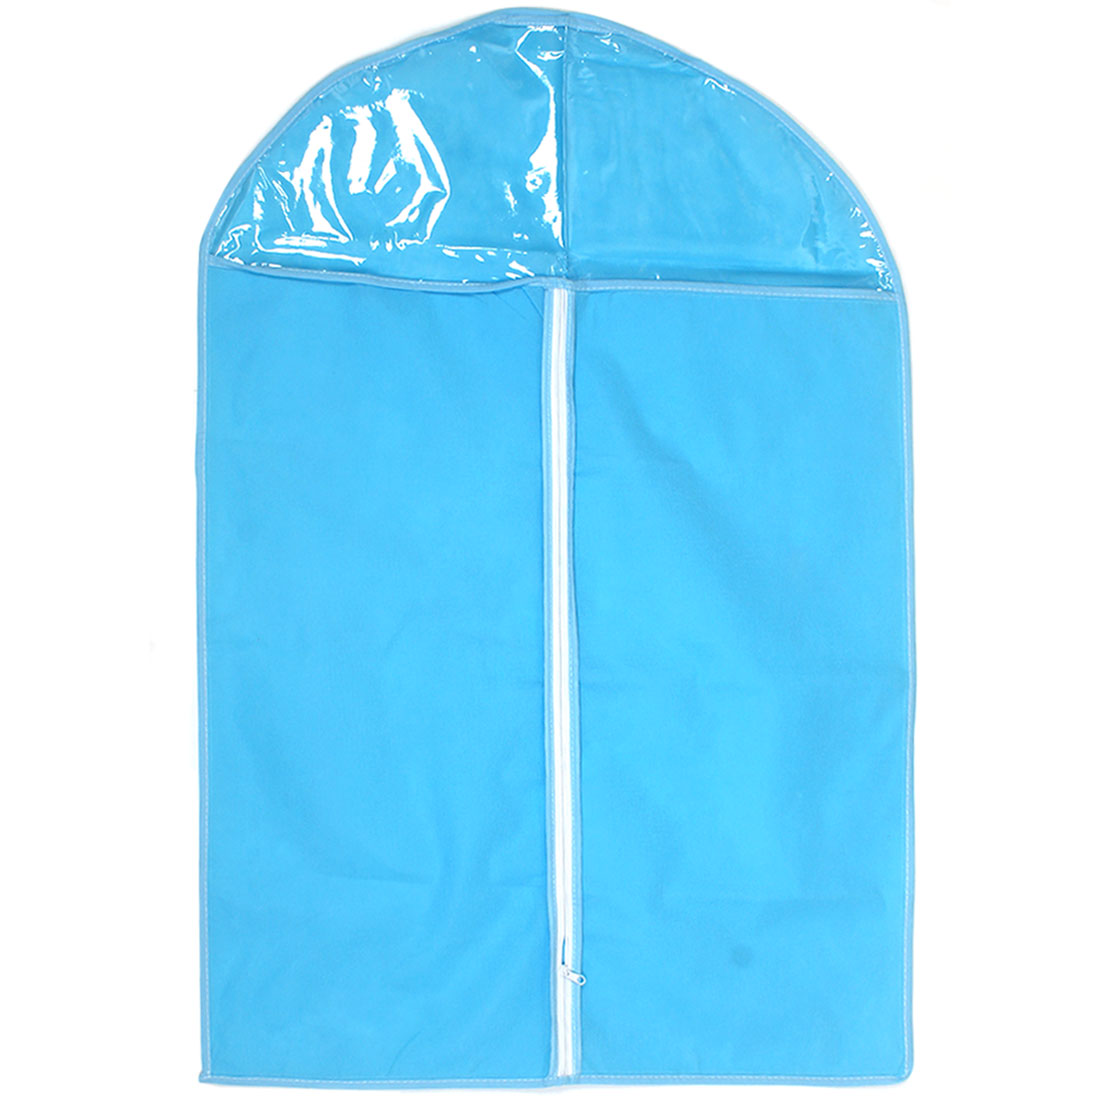 Household Blue Clear Non-woven Breathable Garment Suit Dress Cover Bag 83 x 57cm